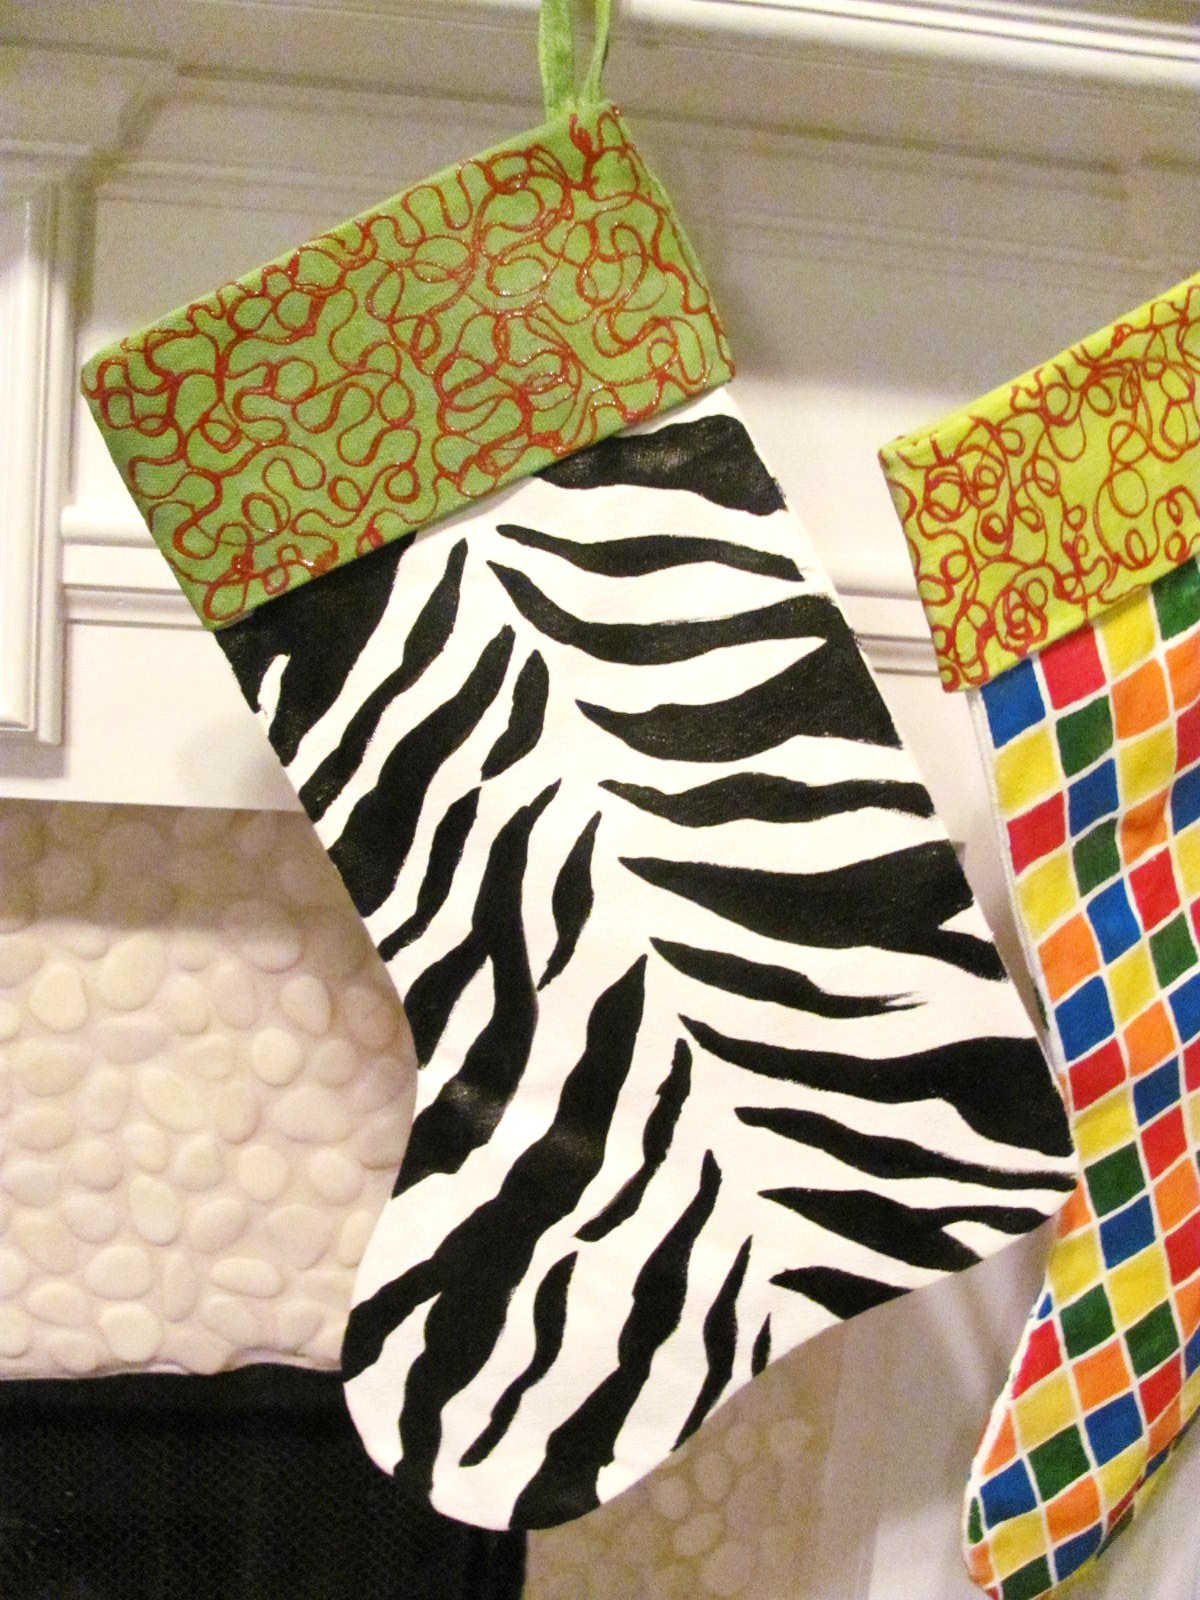 How to Paint on Fabric Hand Painted Designs, Chair